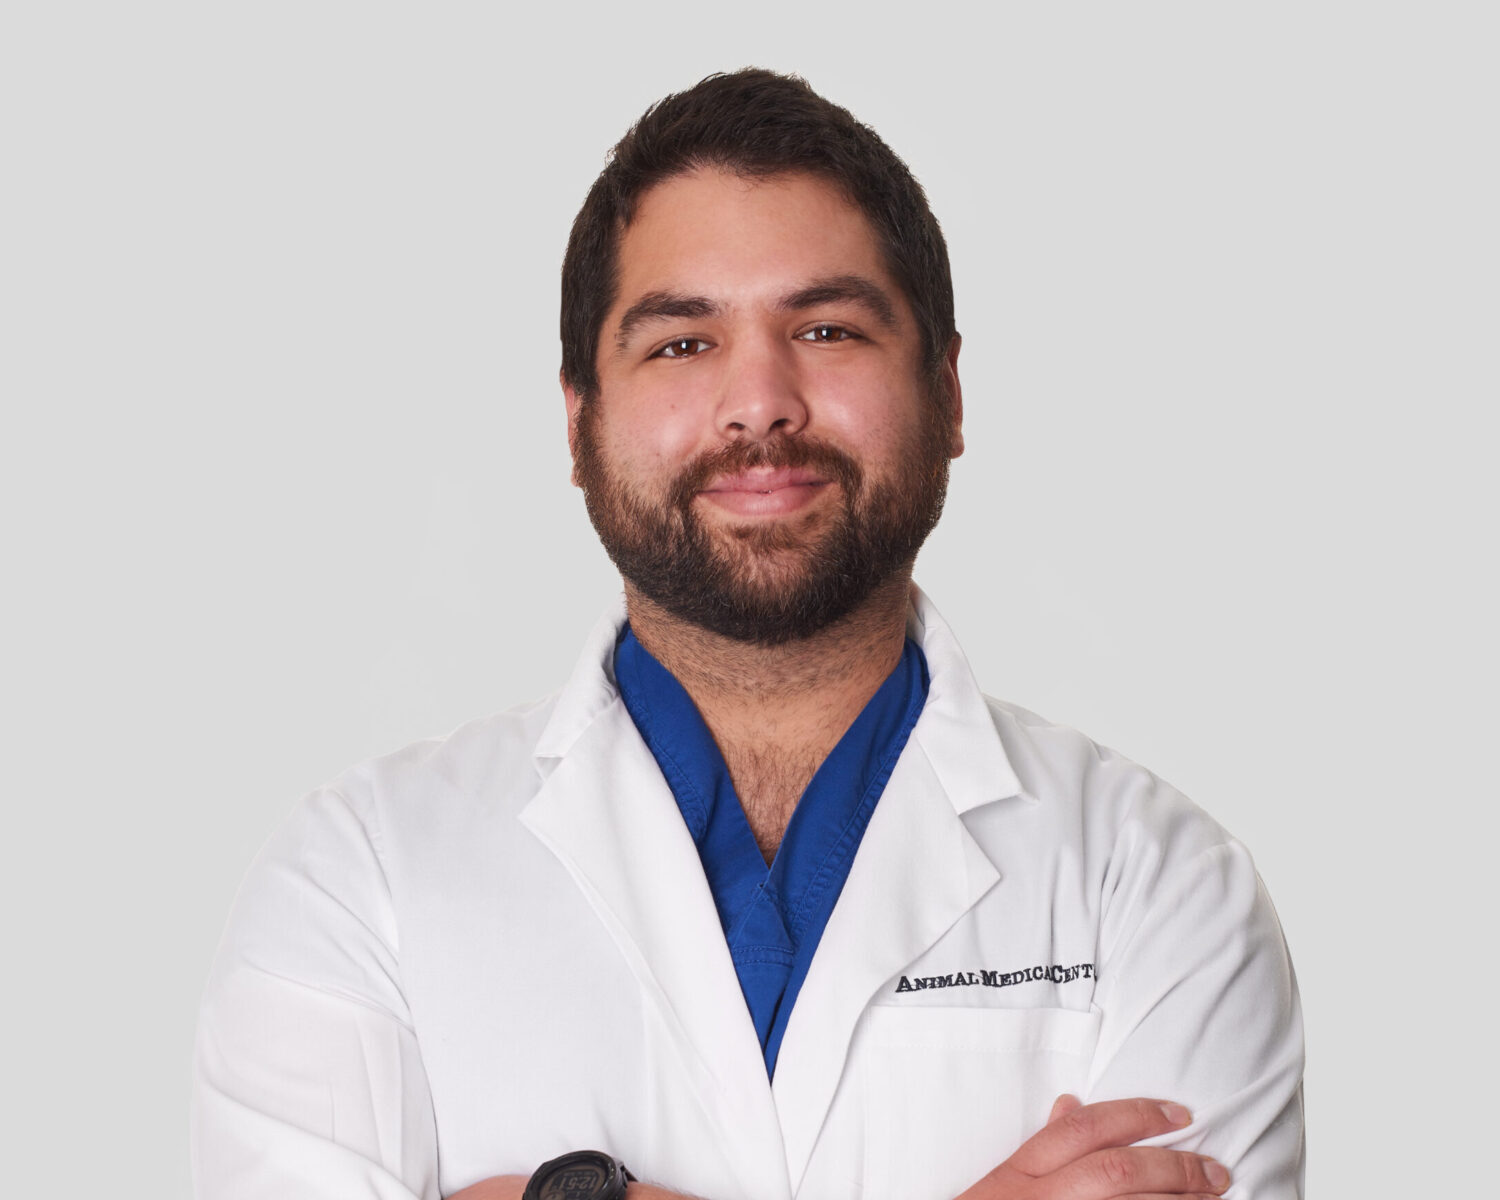 Dr Jacobo Romano of the Animal Medical Center in New York City